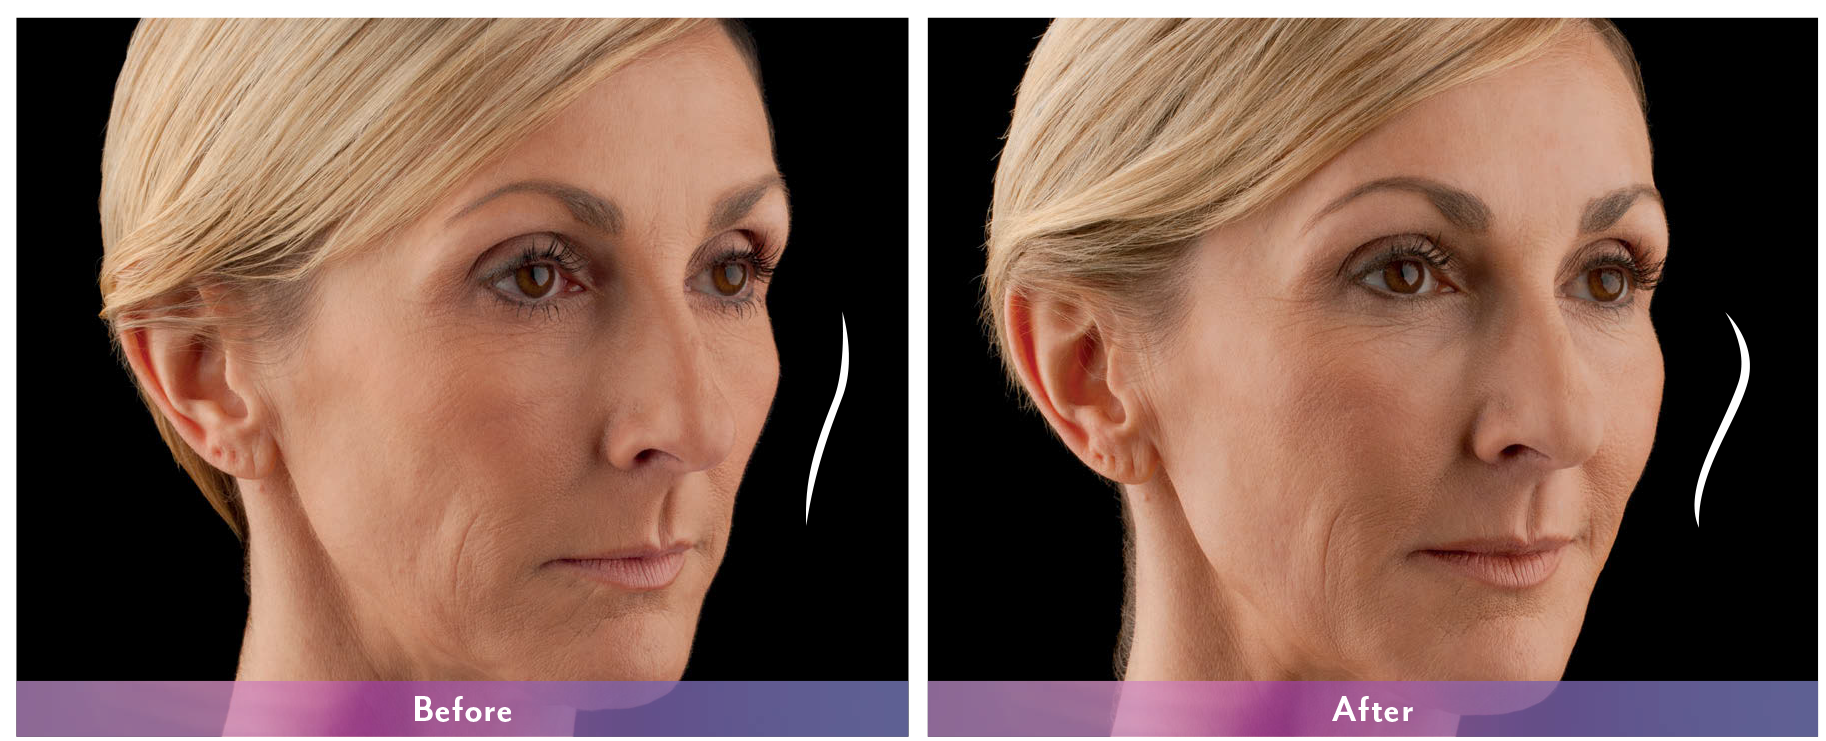 Juvederm Voluma Before and After 3